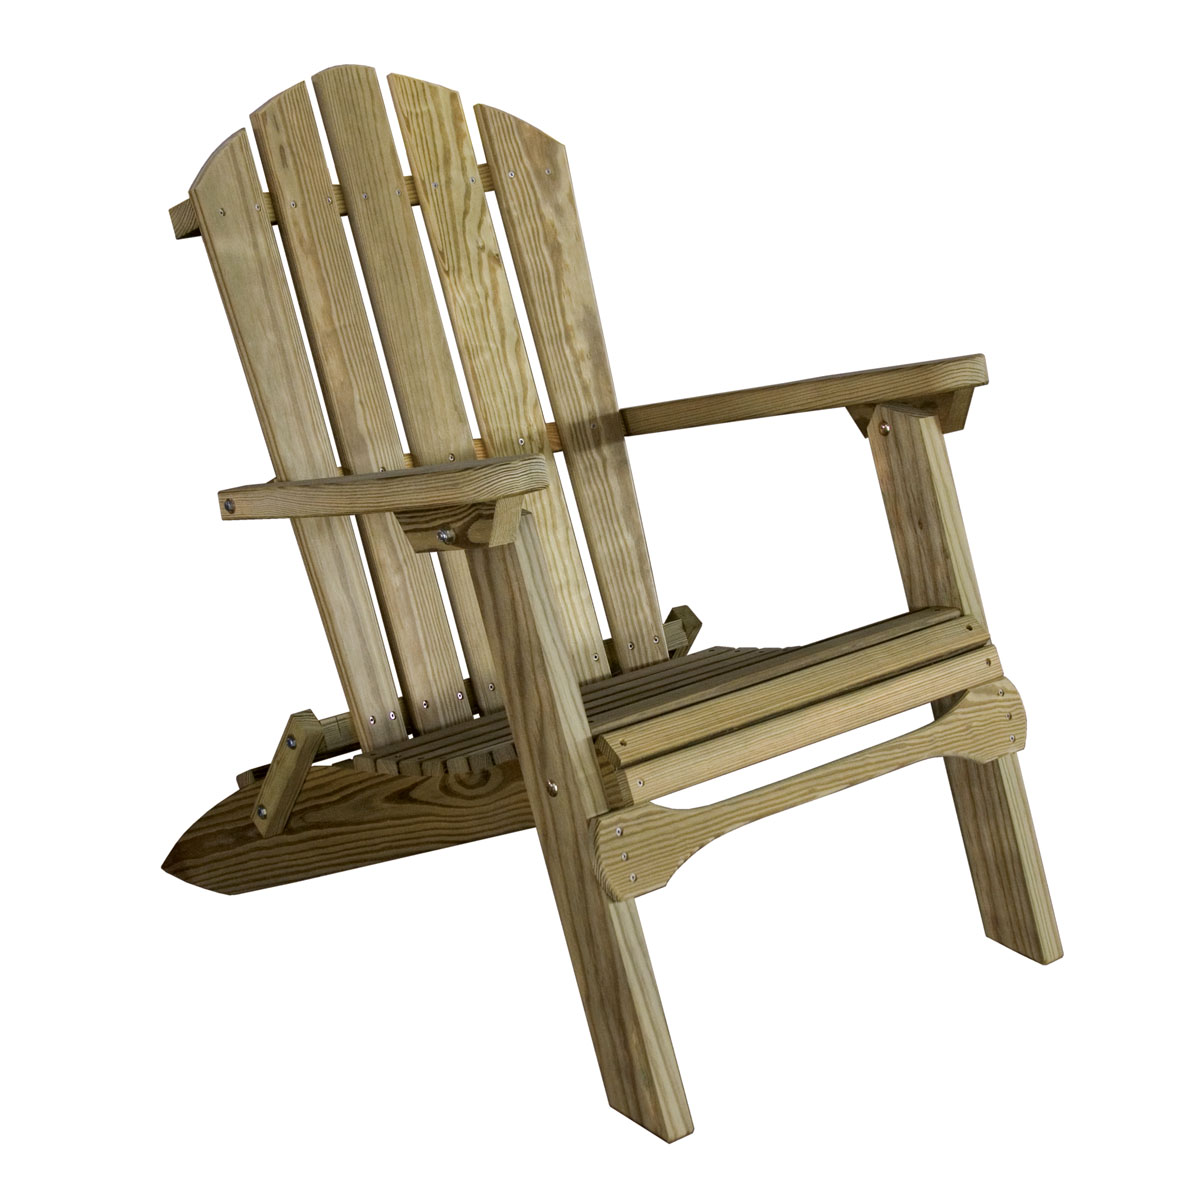 Folding adirondack chair luxcraft - Luxcraft fine outdoor furniture ...